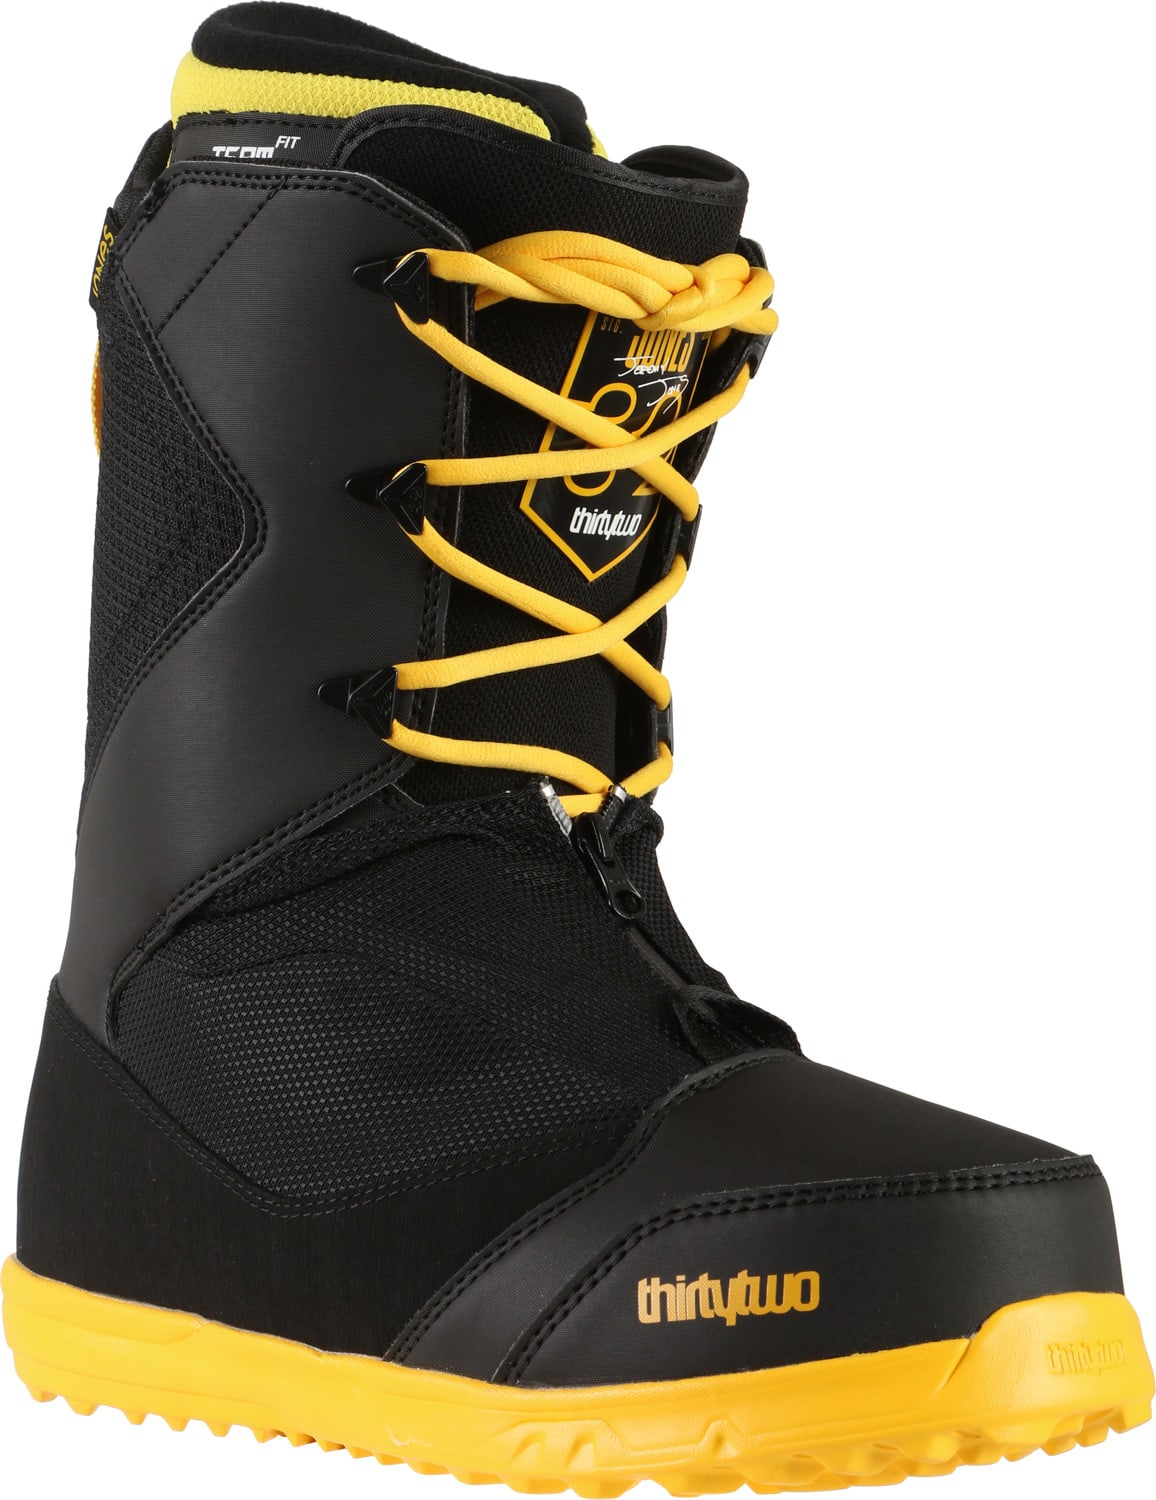 a76d8b4cf 32 - Thirty Two Jones Zephyr Snowboard Boots - thumbnail 3